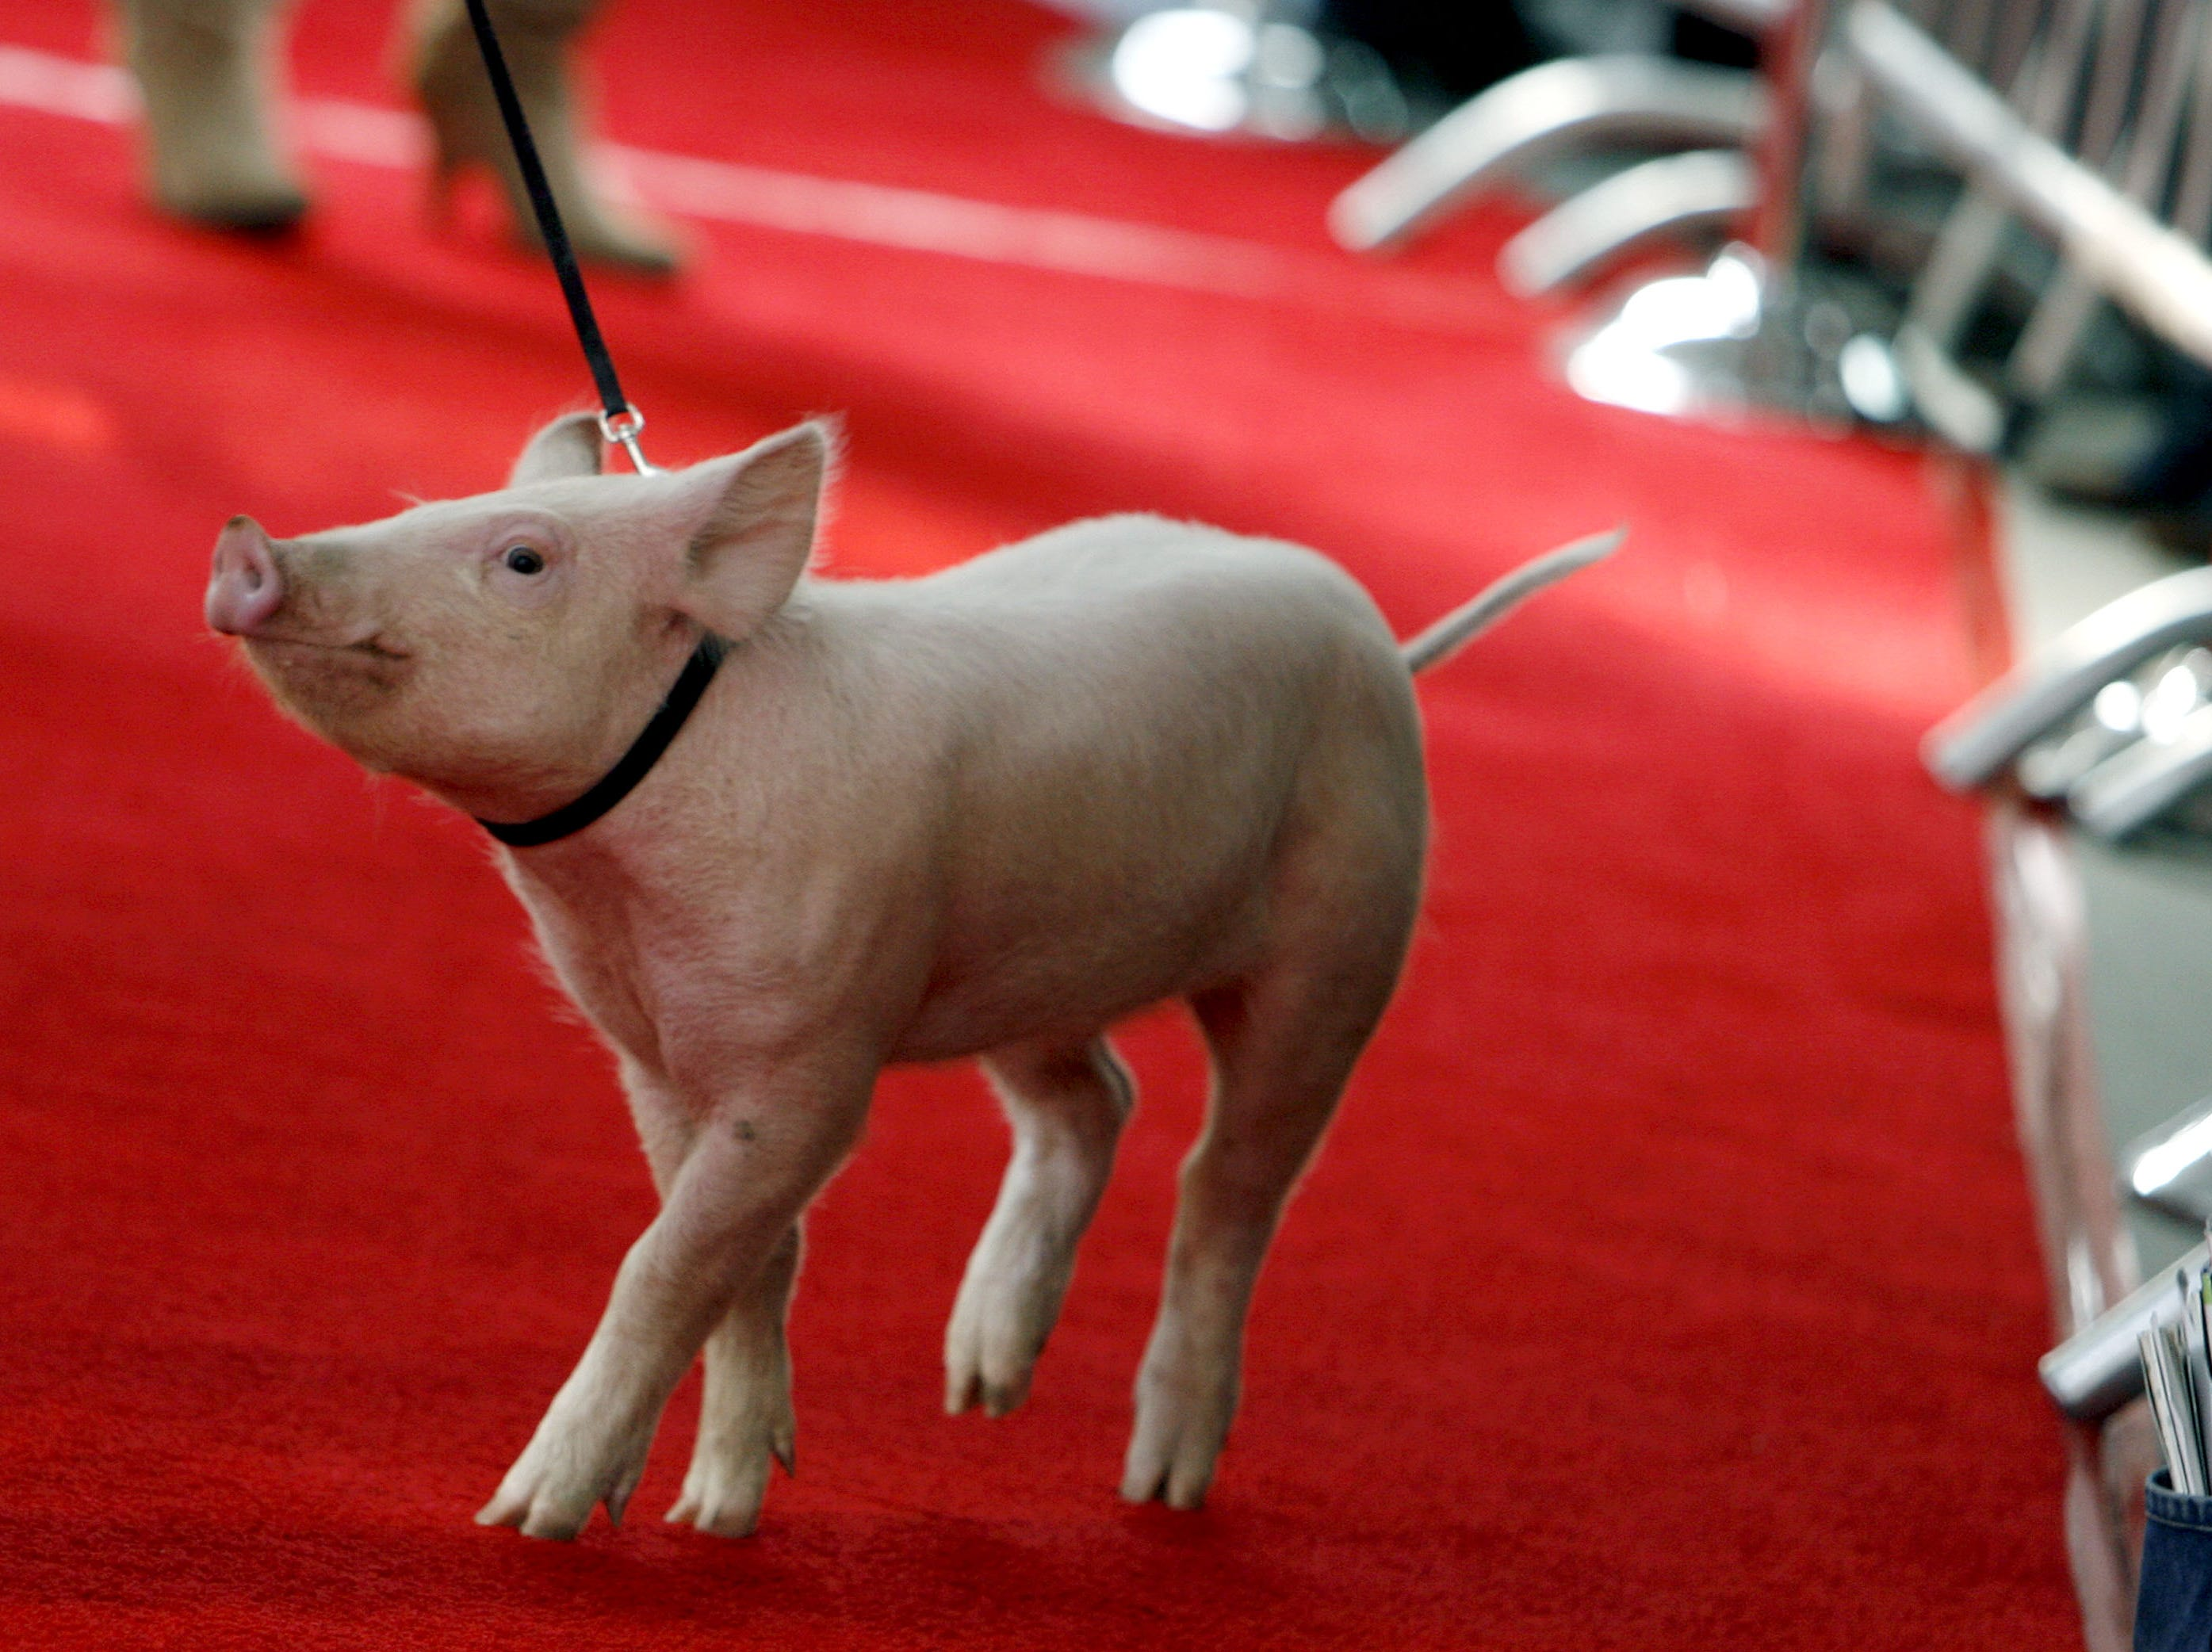 """""""Wilbur"""" the pig walks the red carpet as he arrives at the premiere of """"Charlotte's Web"""" in the Hollywood section of Los Angeles, on Sunday, Dec. 10, 2006. Wilbur spent the rest of his days on a farm in Murfreesboro."""